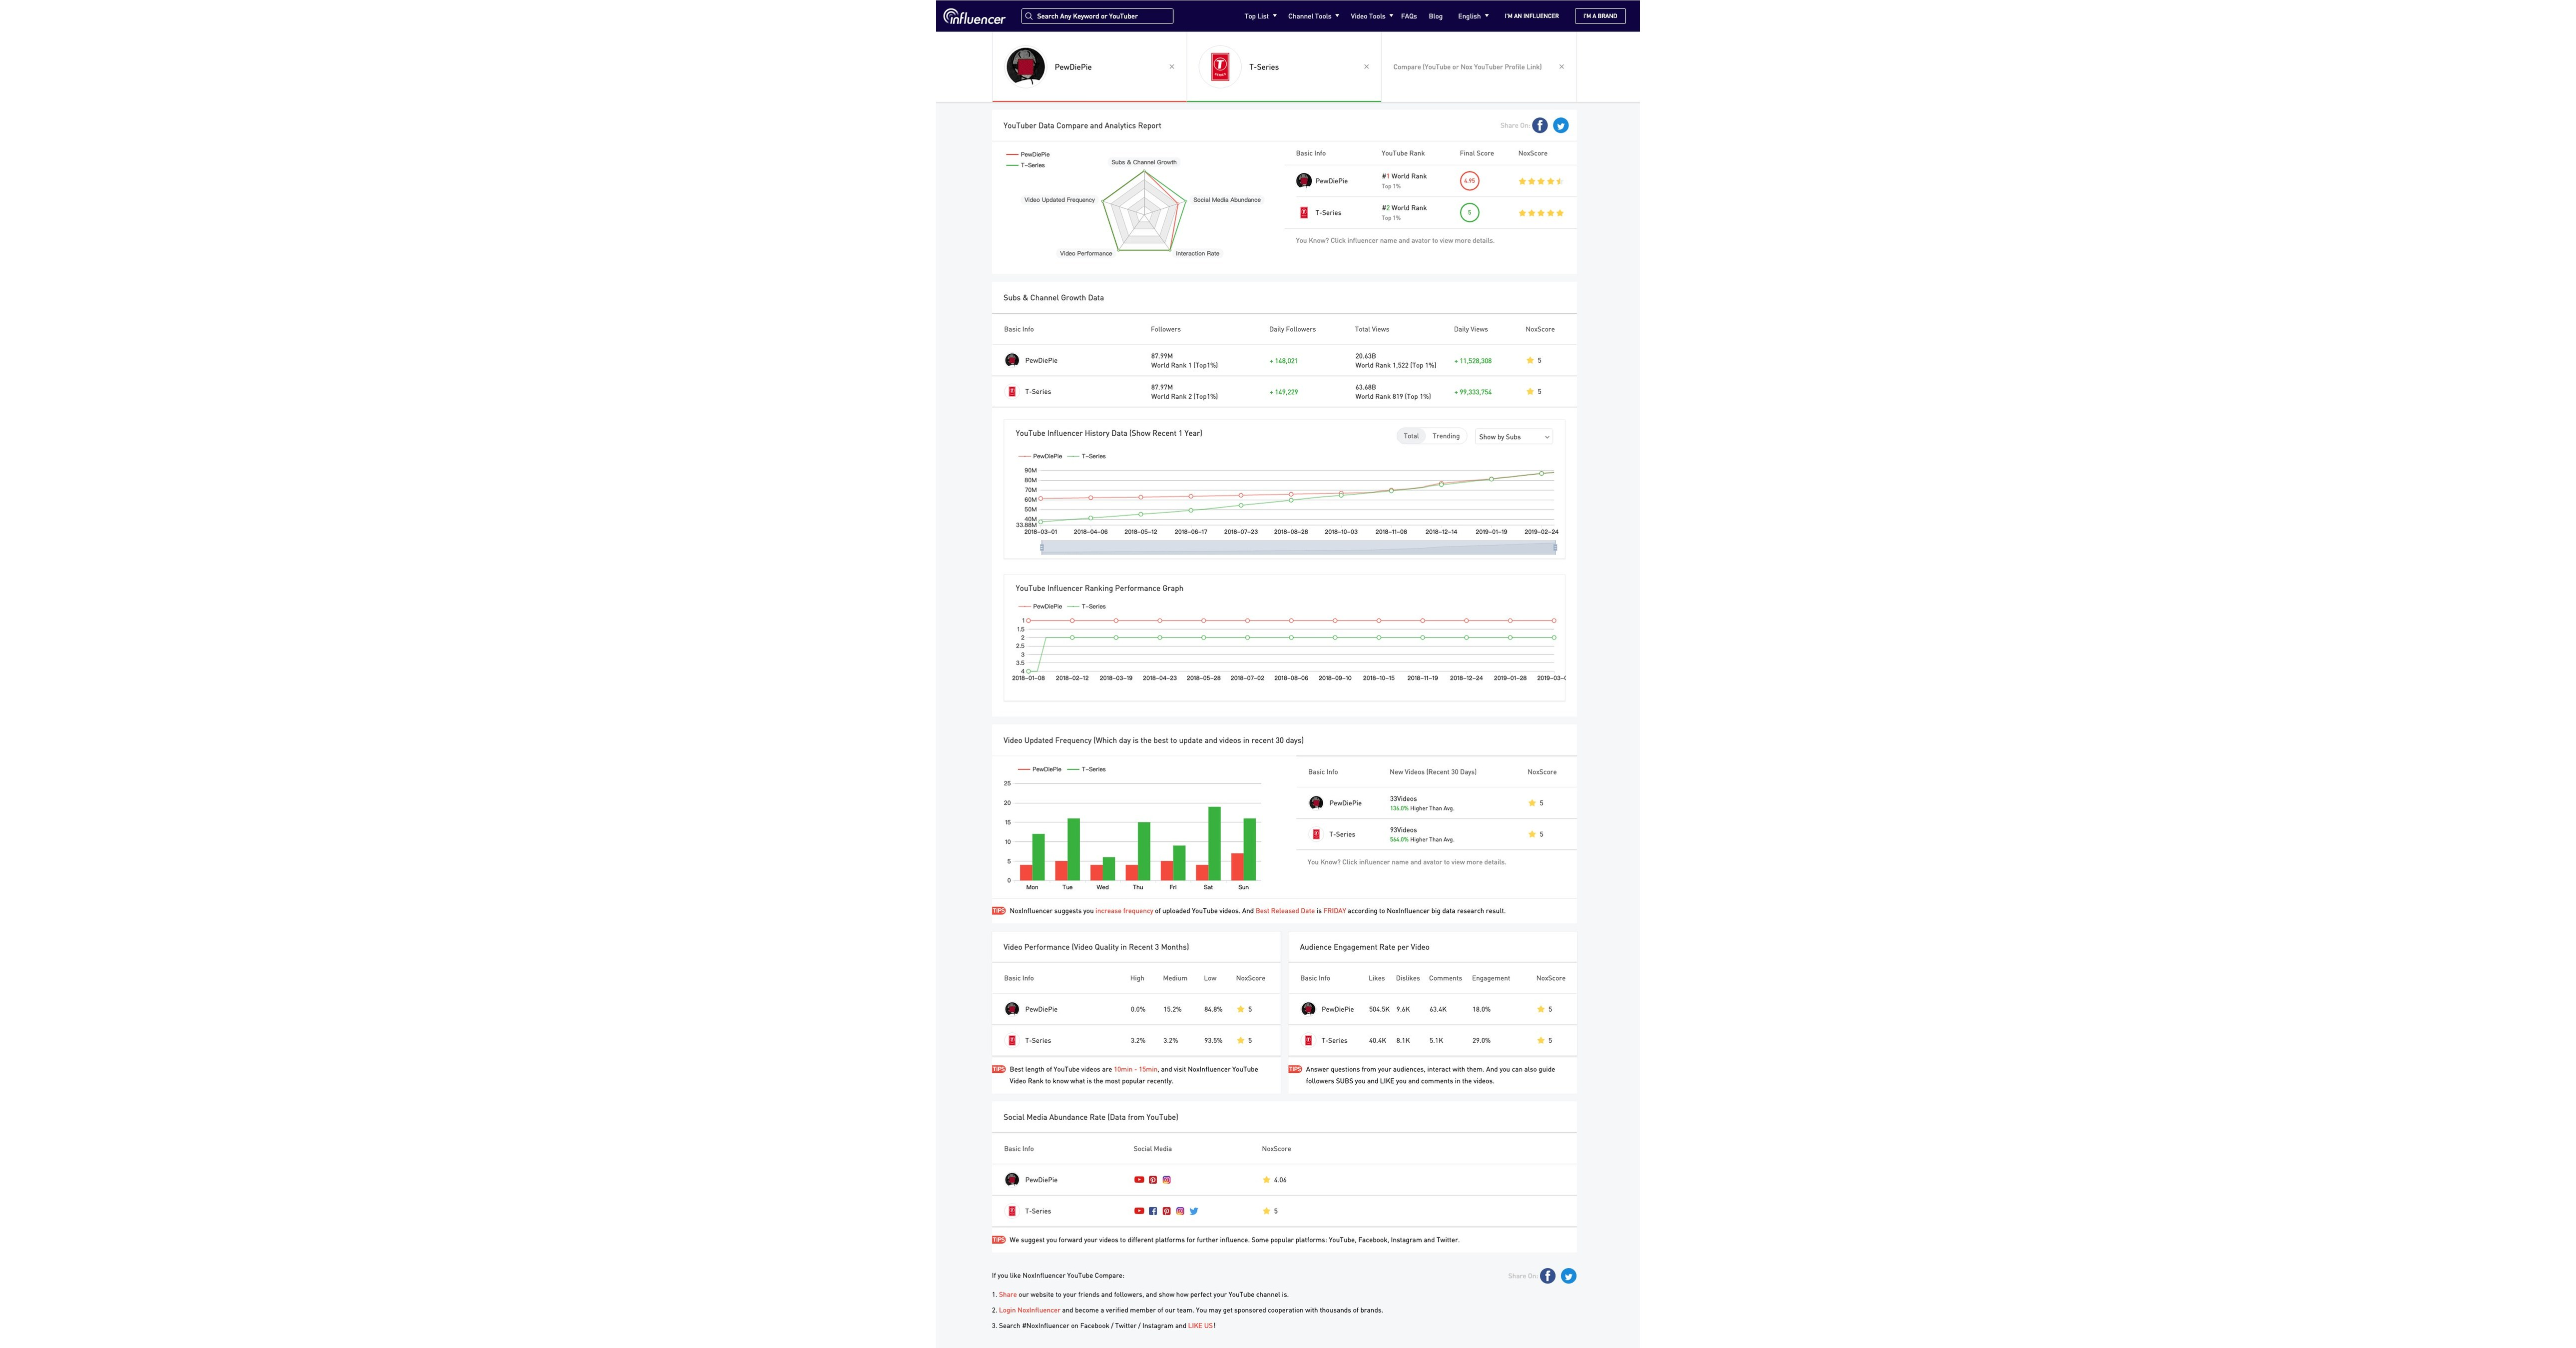 NoxInfluencer the best free YouTube analytics tool in 2019